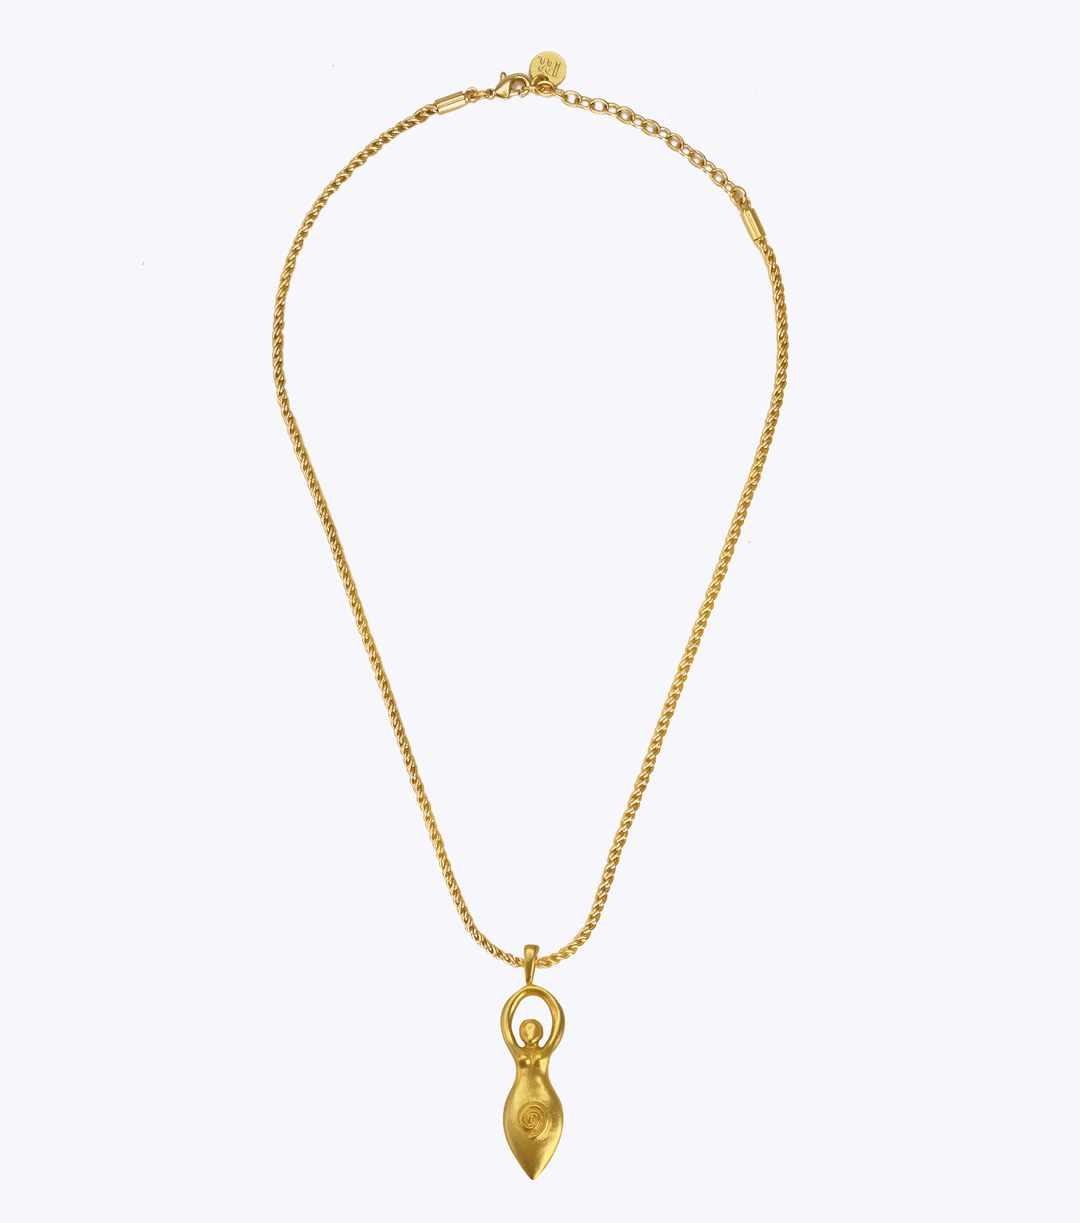 Life Goddess Infinito Long Necklace